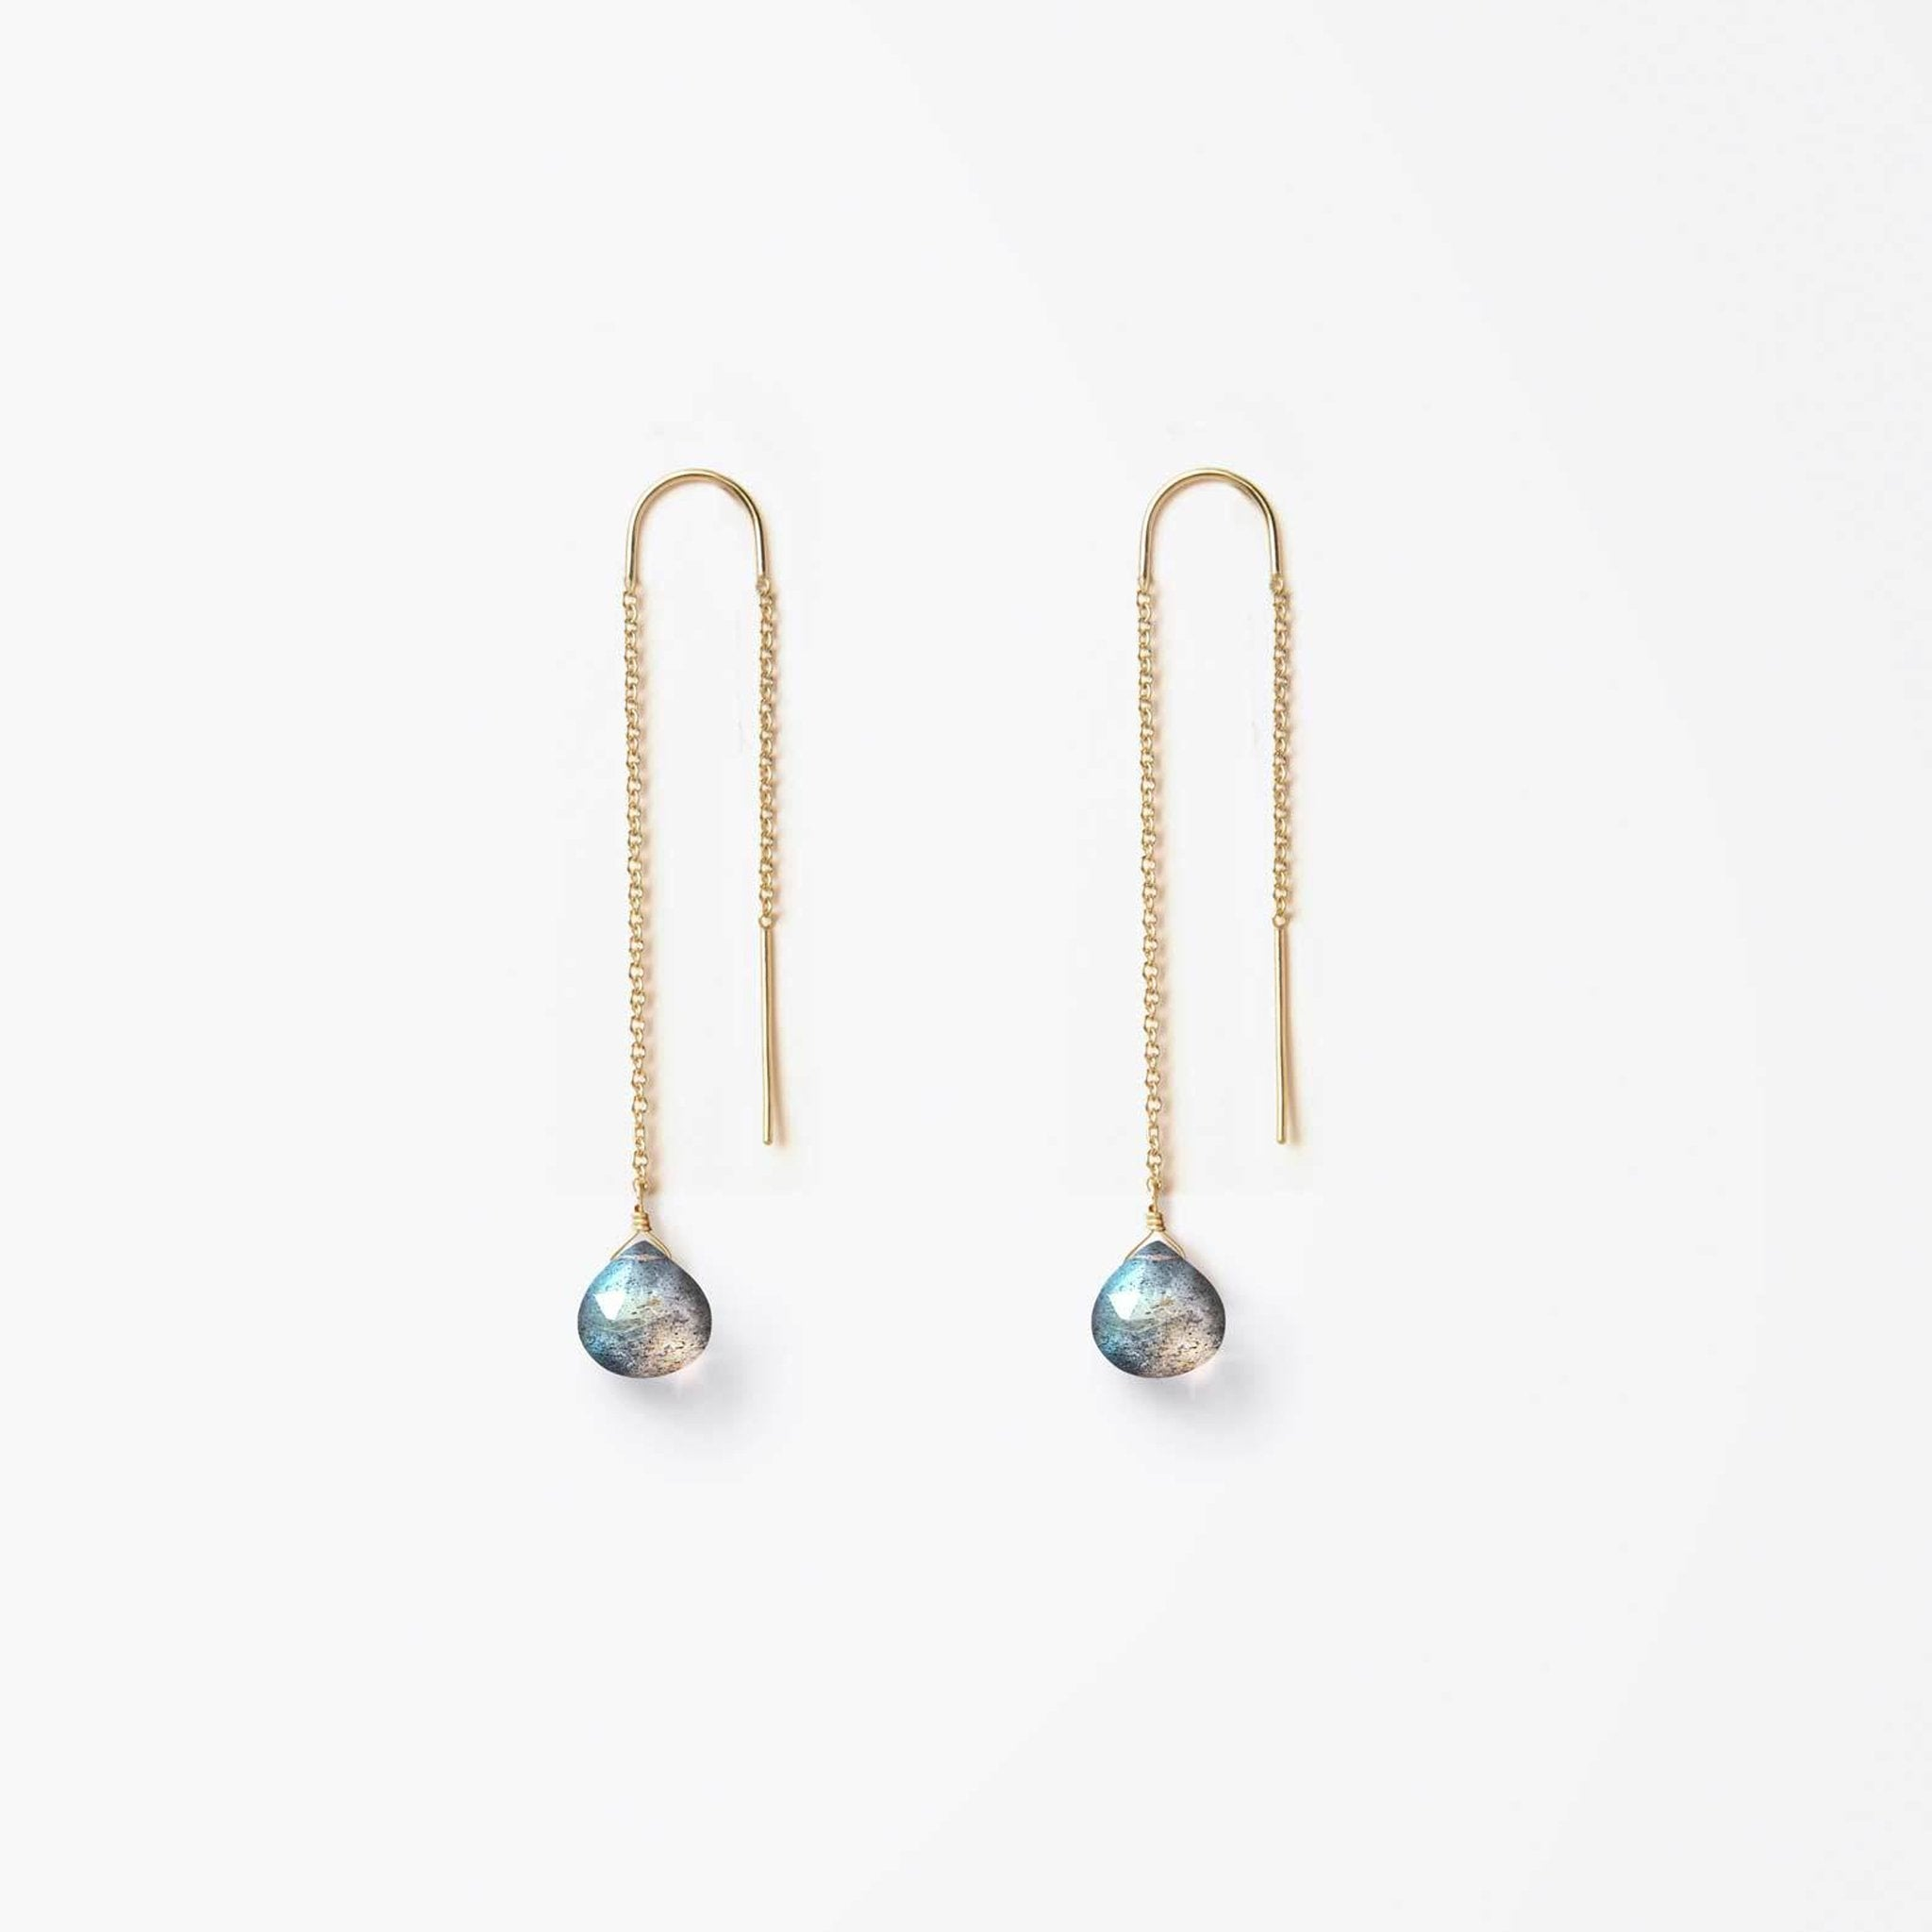 waterfall earring | iridescent labradorite